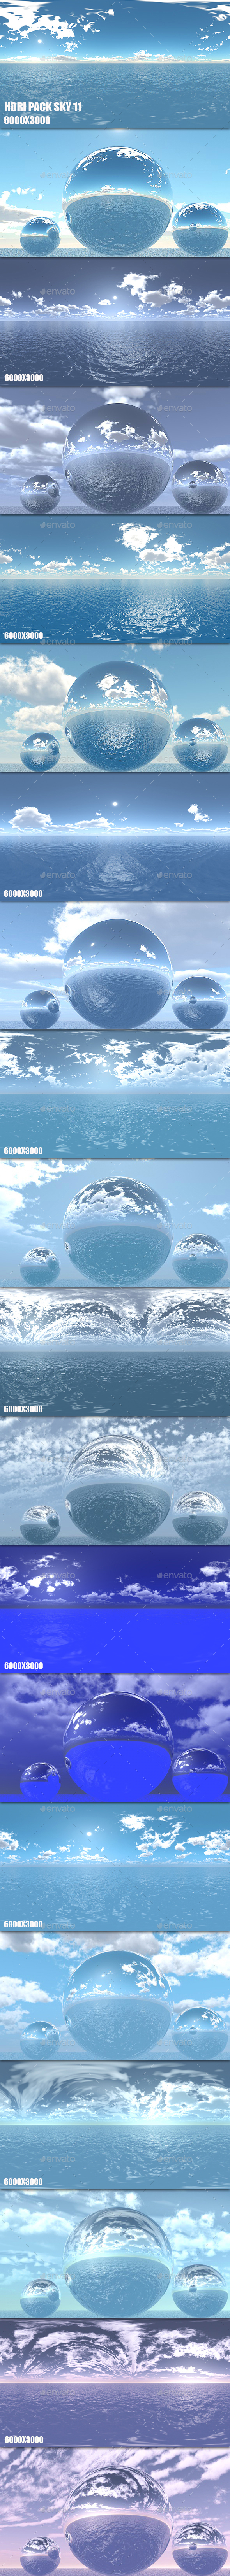 HDRI Pack Sky 12 - 3DOcean Item for Sale